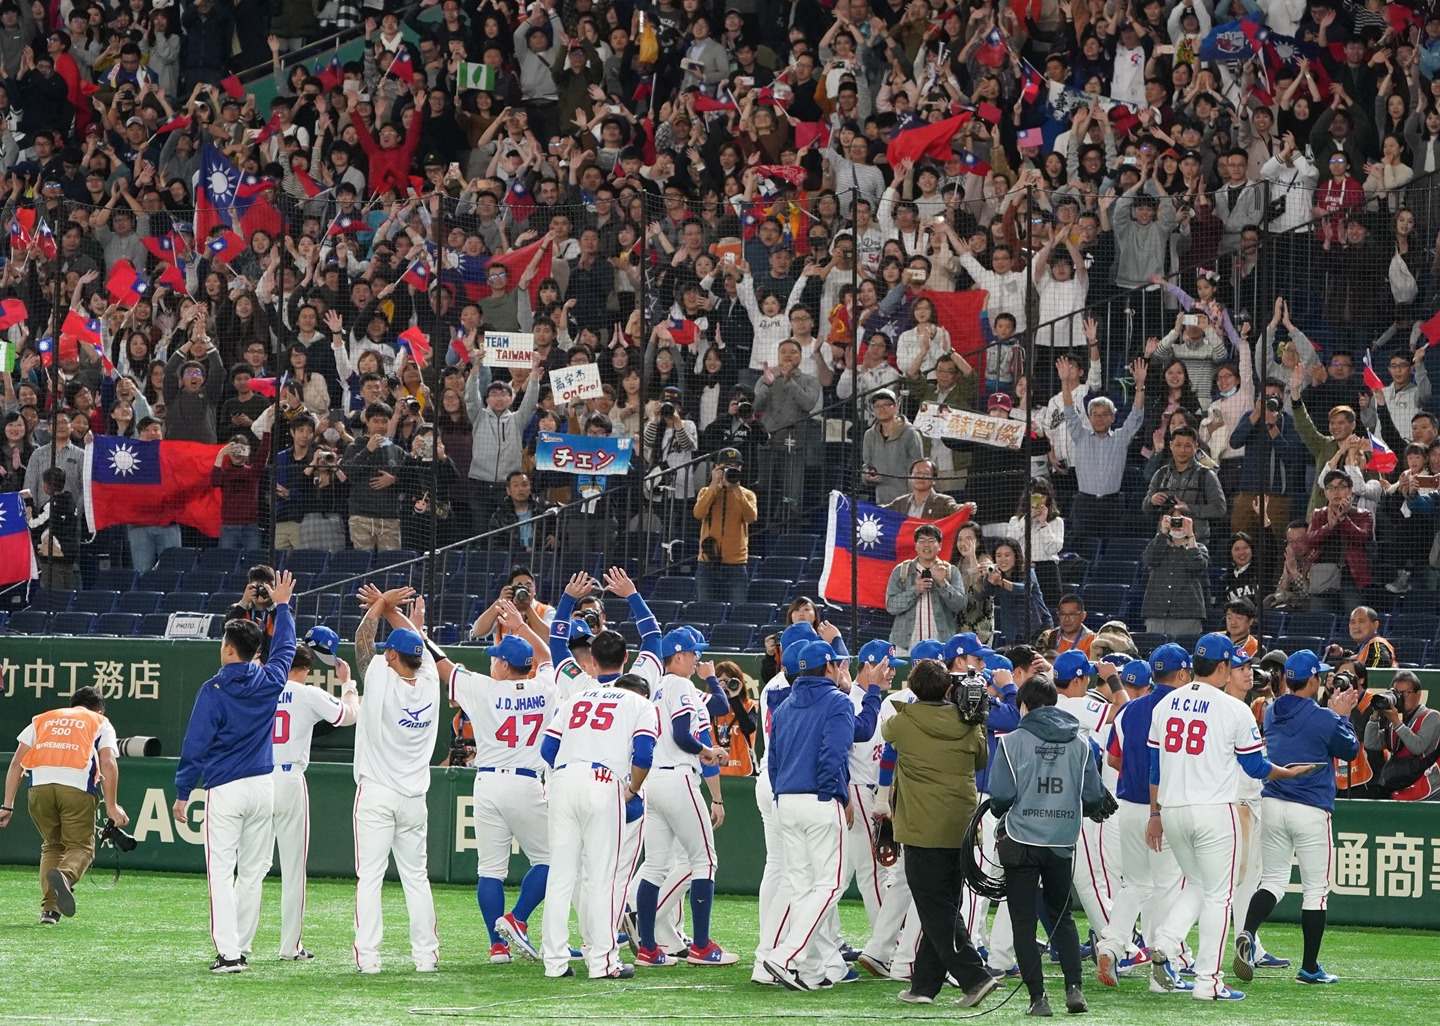 Chinese Taipei players celebrate the win with their raucous fans